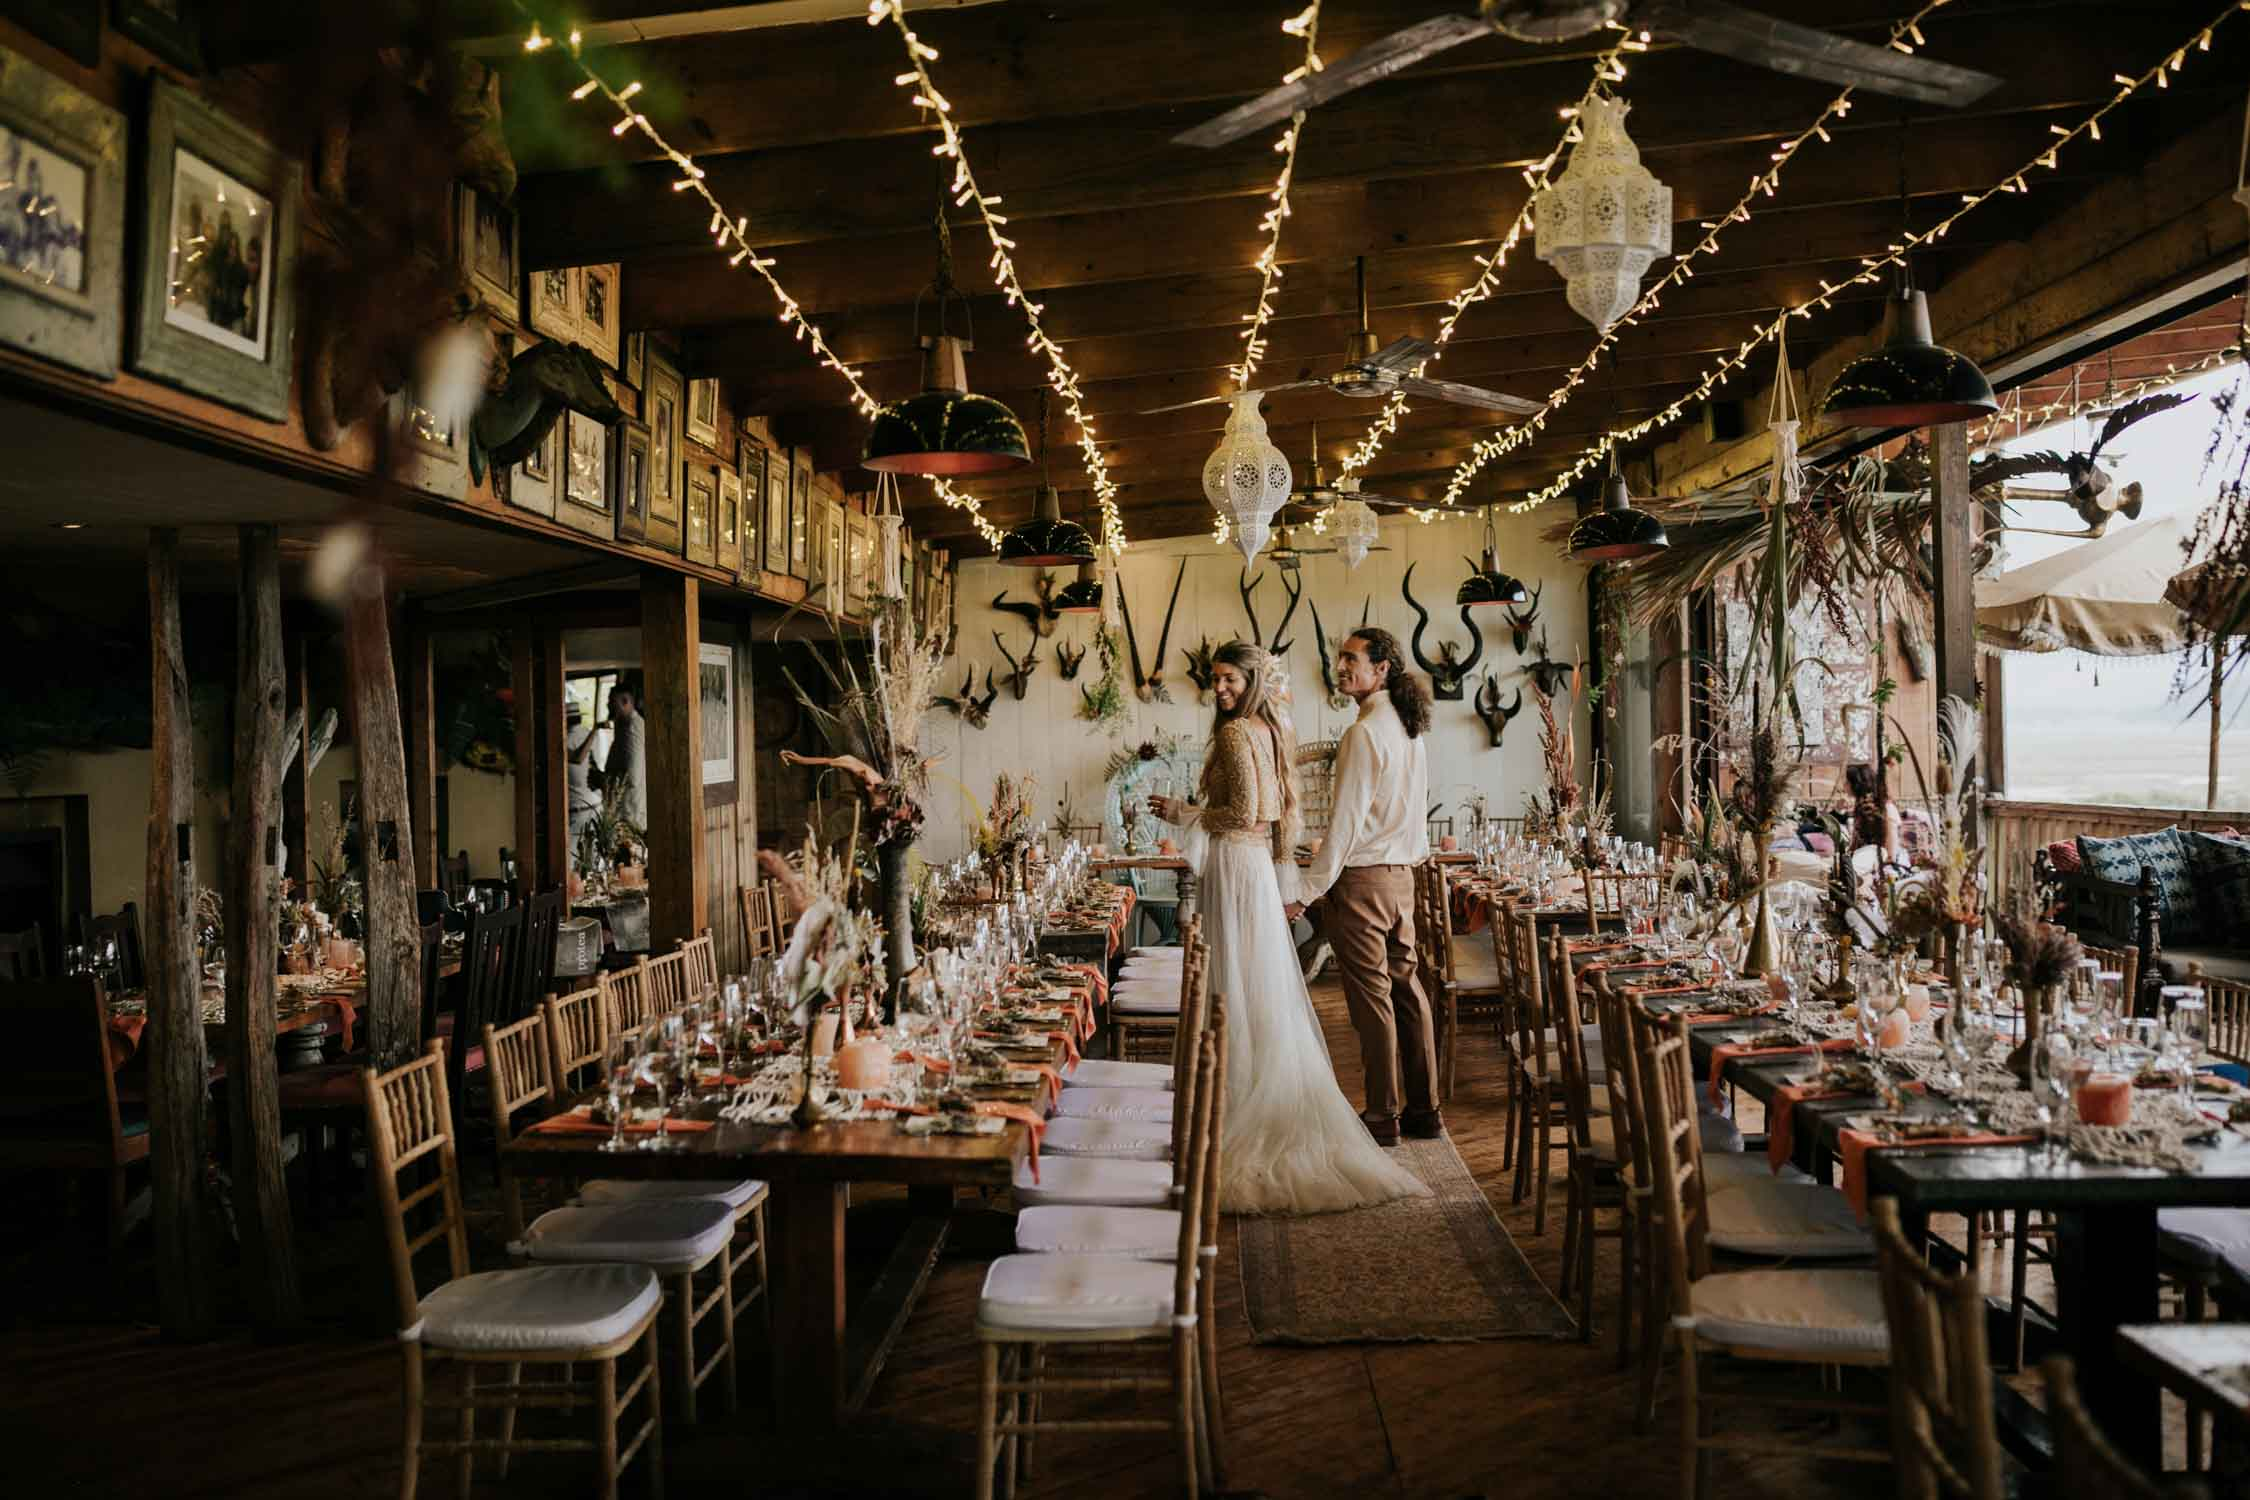 Boho inspired wedding decor of rustic wooden chairs, woven macrame table runners, feather and dried flower arrangements in brass and copper pots, skull table numbers, gemstones and Bali Wicker Peacock Chairs at destination wedding in Cape Town South Africa